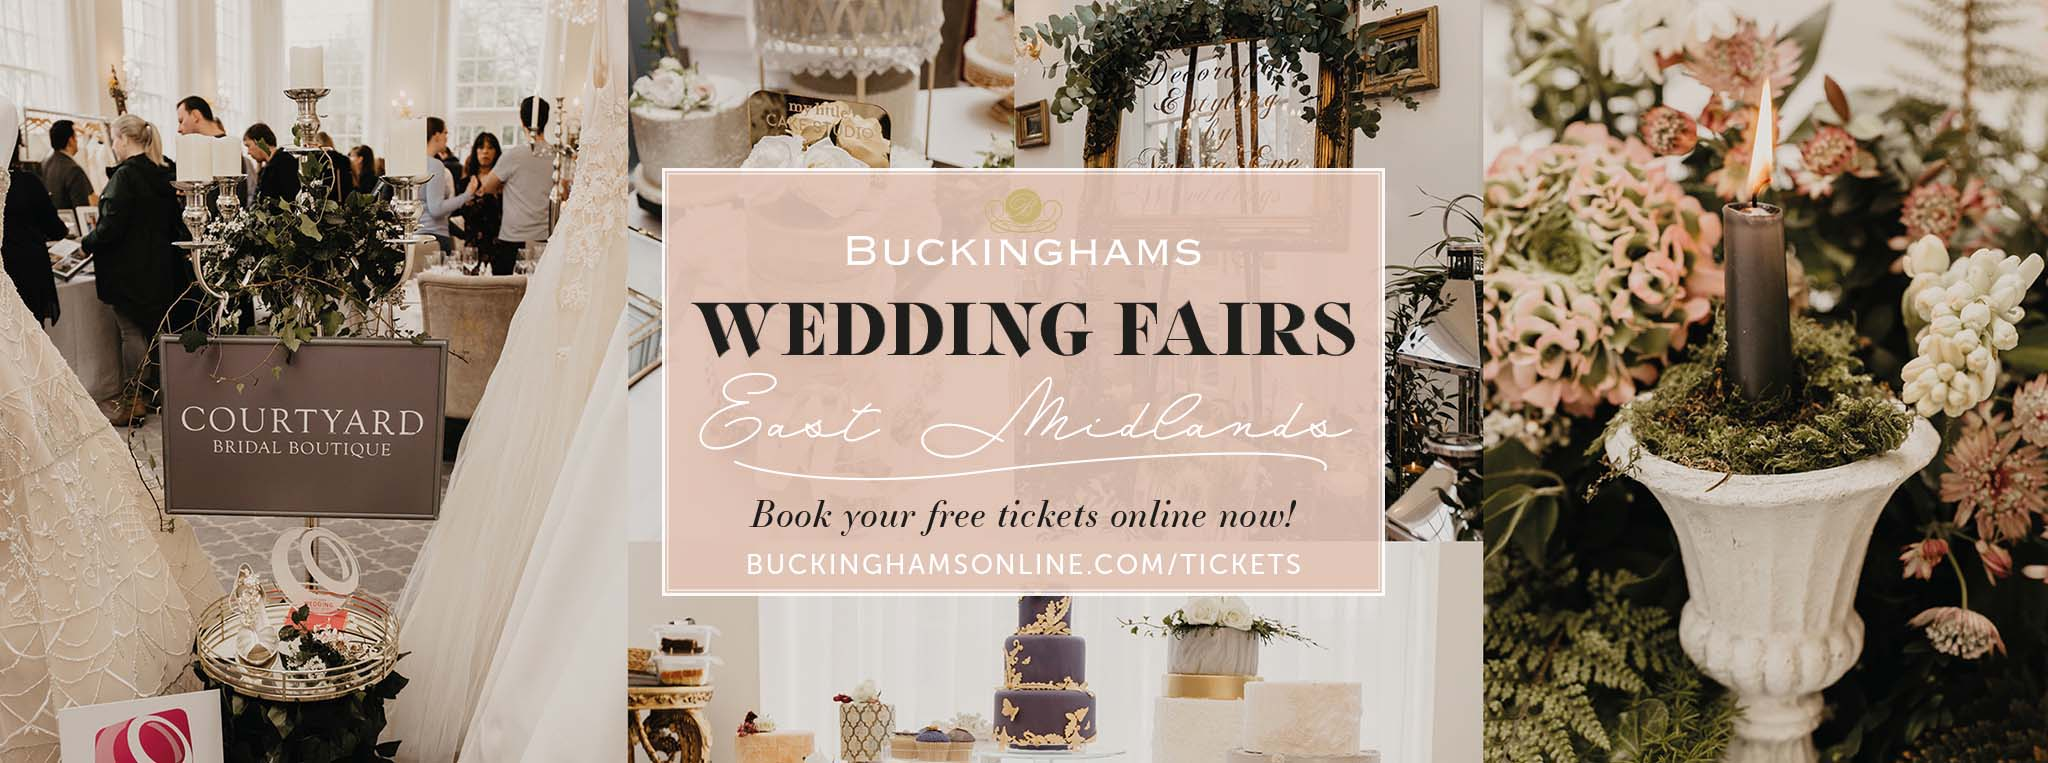 Wedding fairs in the East Midlands